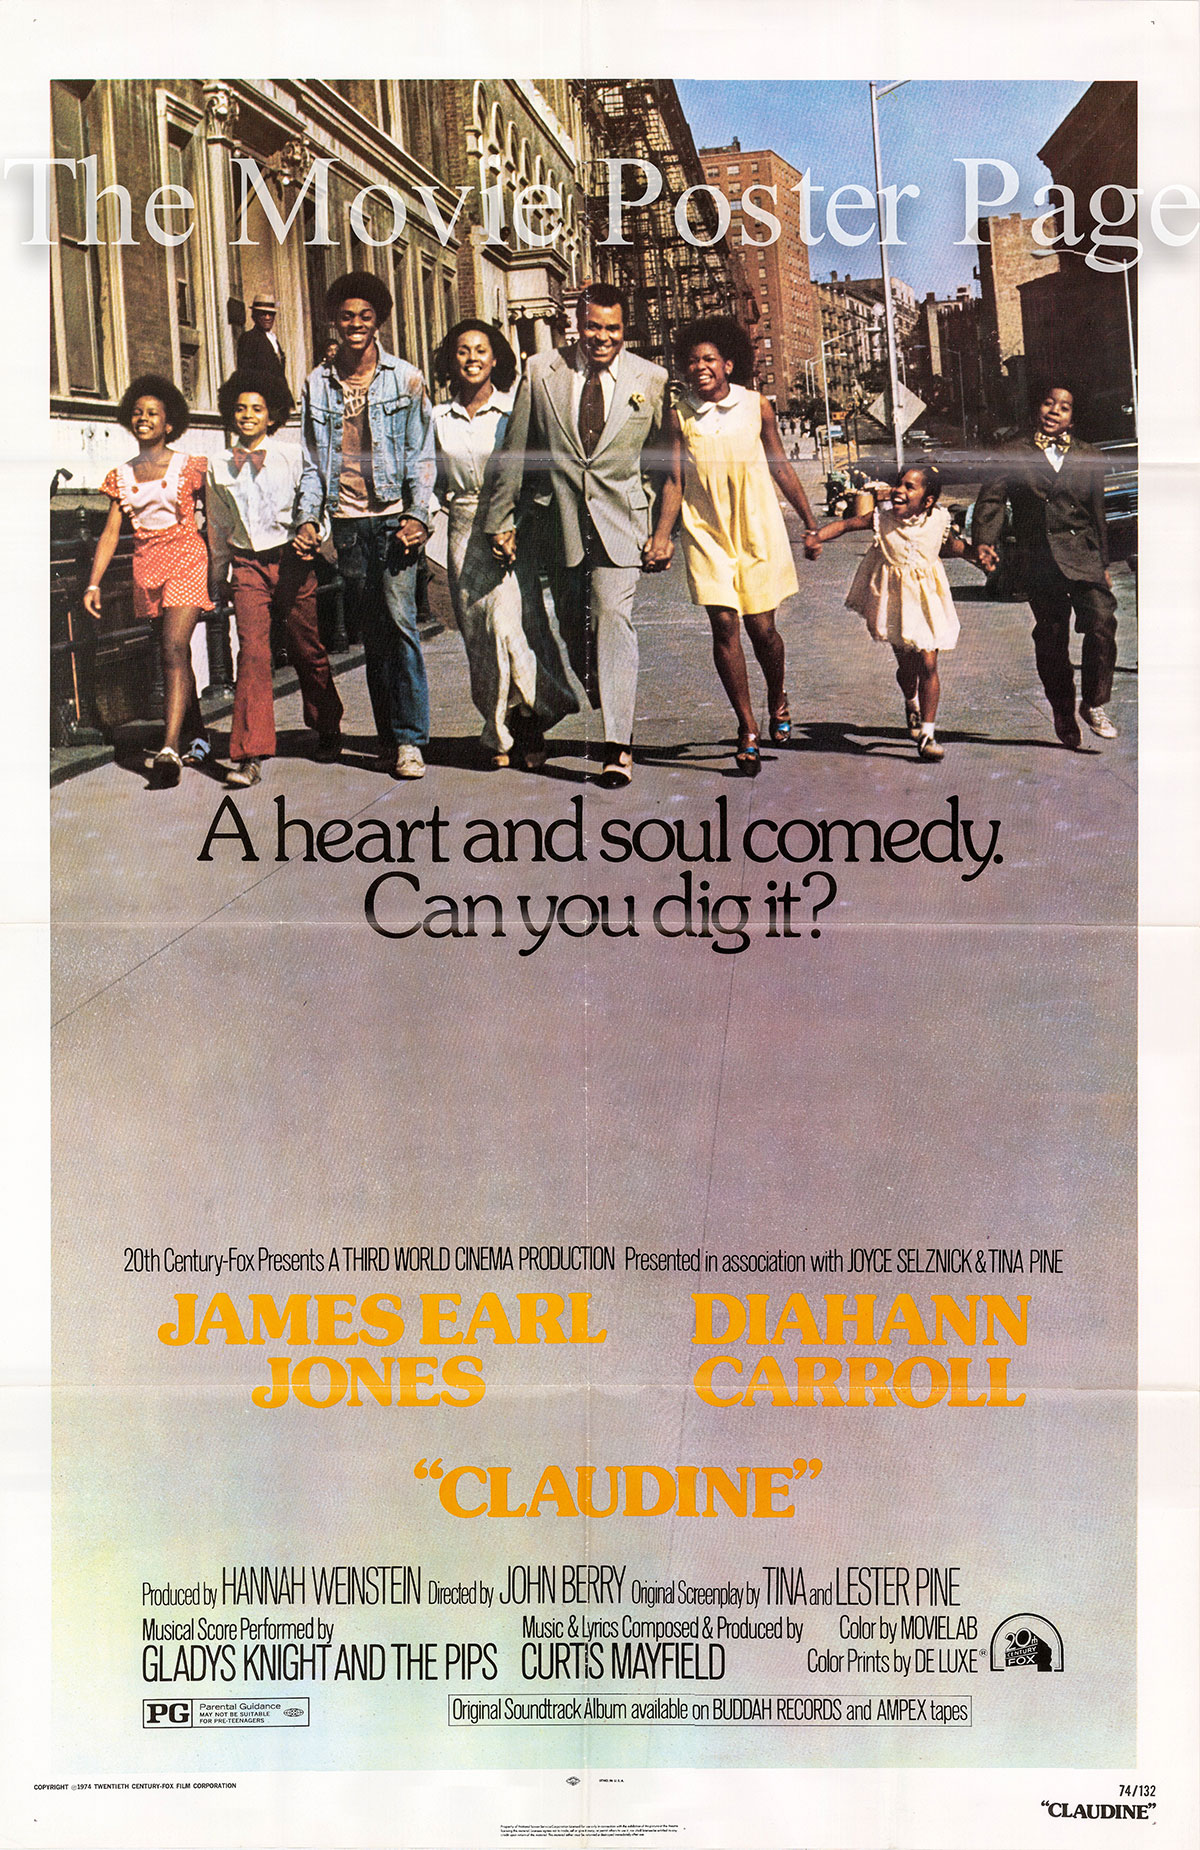 Pictured is a US one-sheet promotional poster for the 1974 John Berry film Claudine starring Diahann Carroll as Claudine.